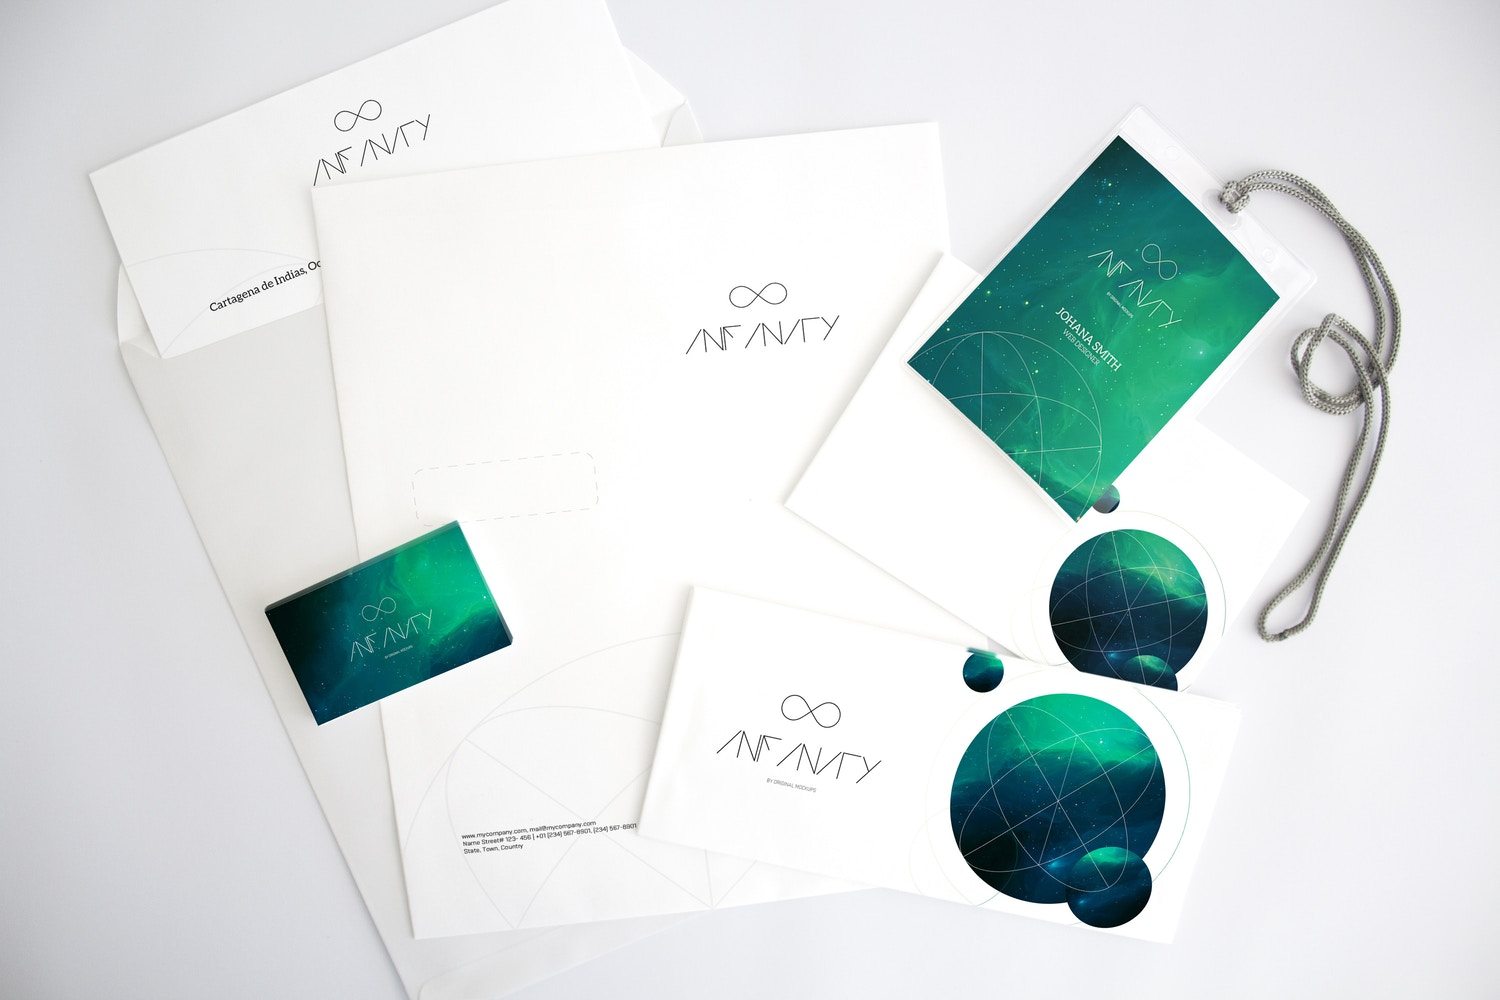 Stationery Mockup 4 by Original Mockups on Original Mockups